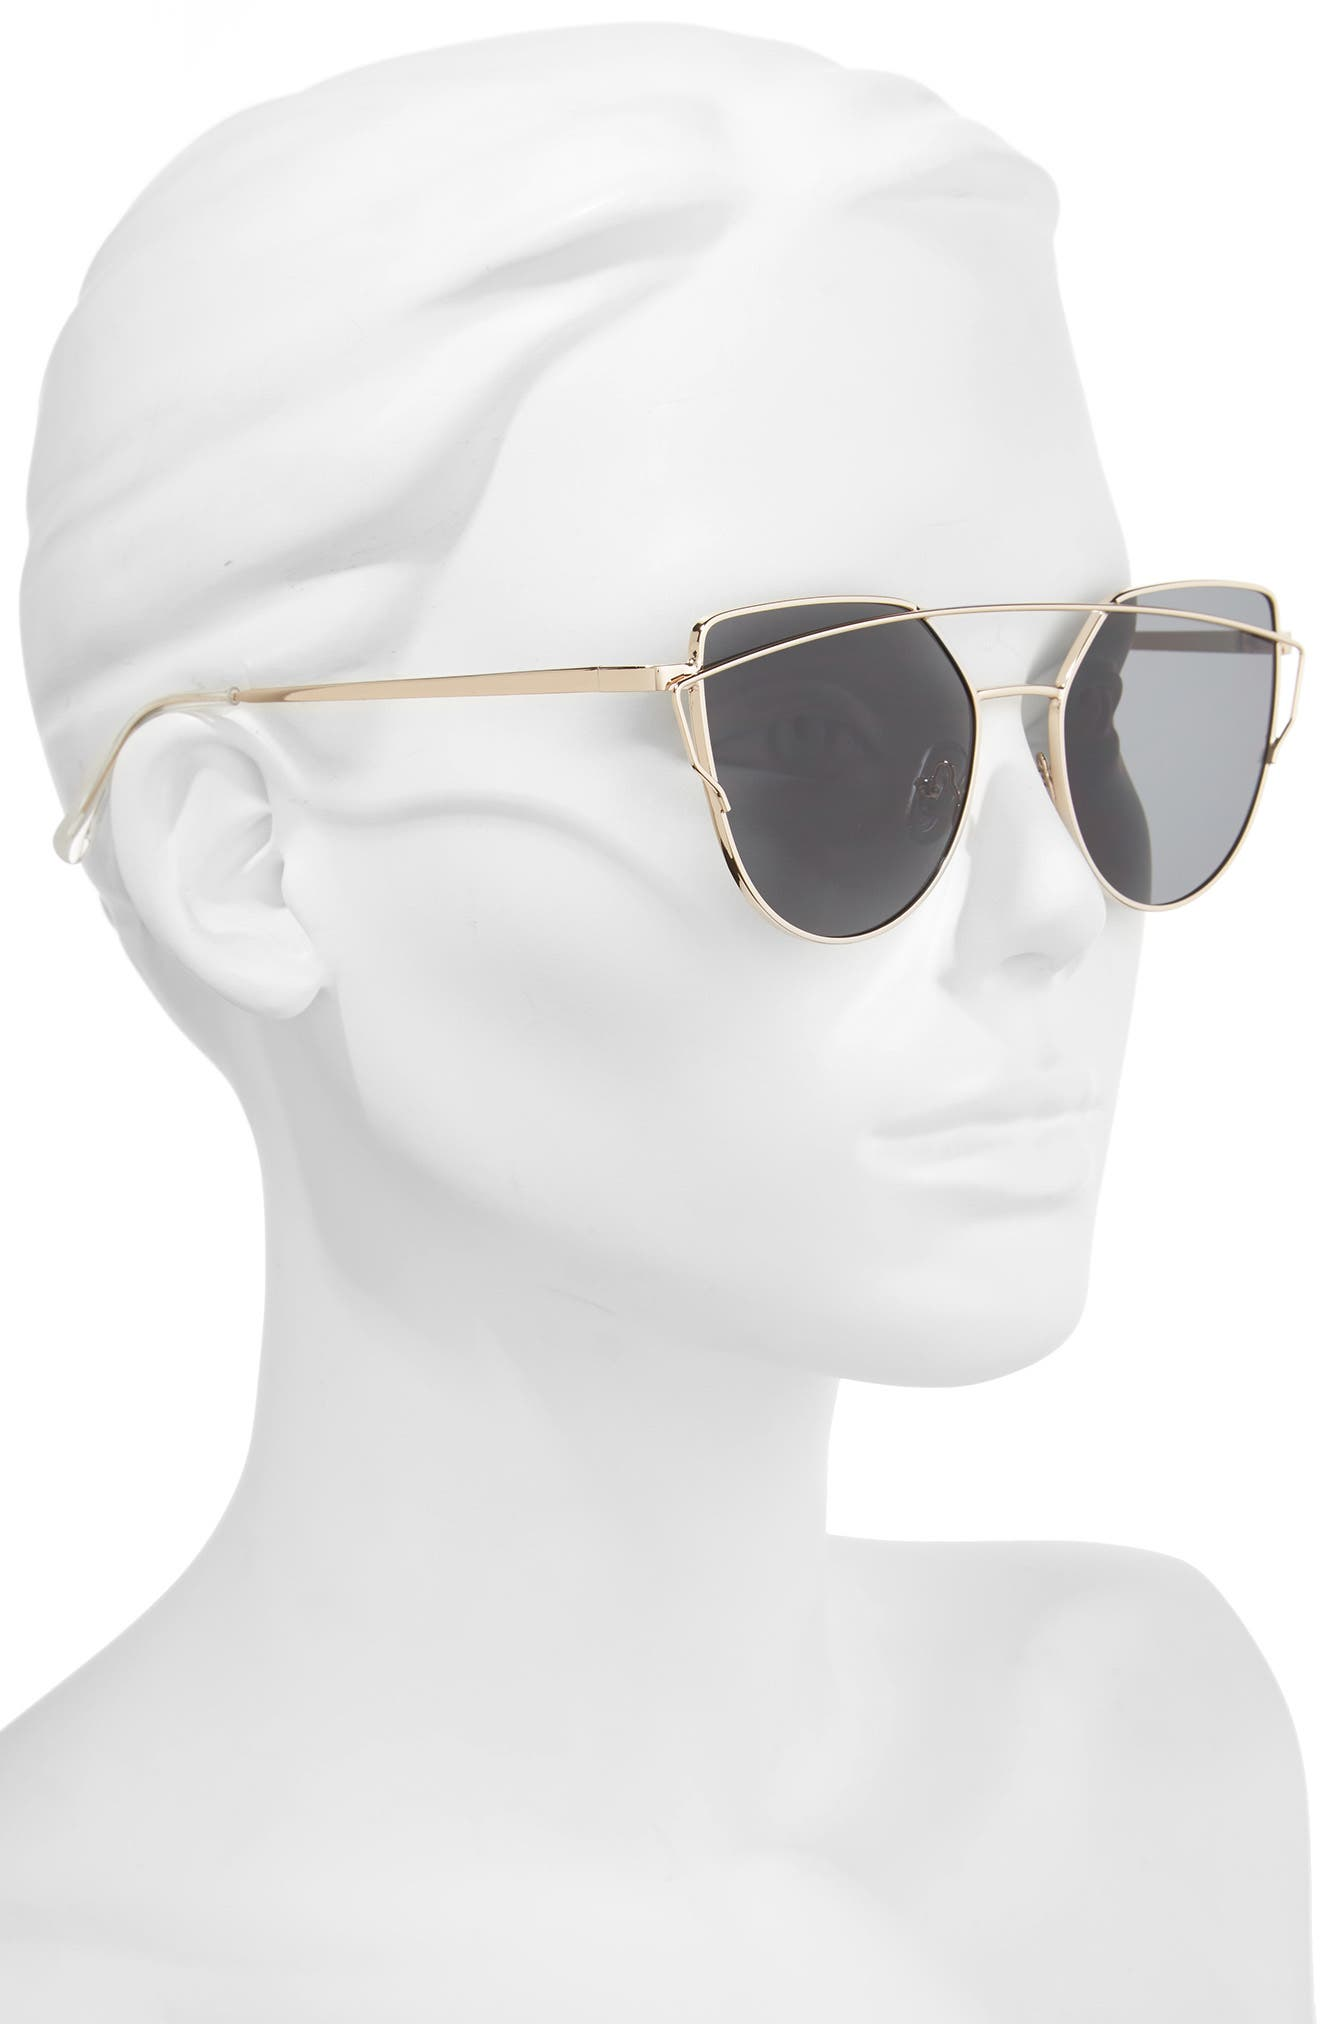 51mm Thin Brow Angular Aviator Sunglasses,                             Alternate thumbnail 15, color,